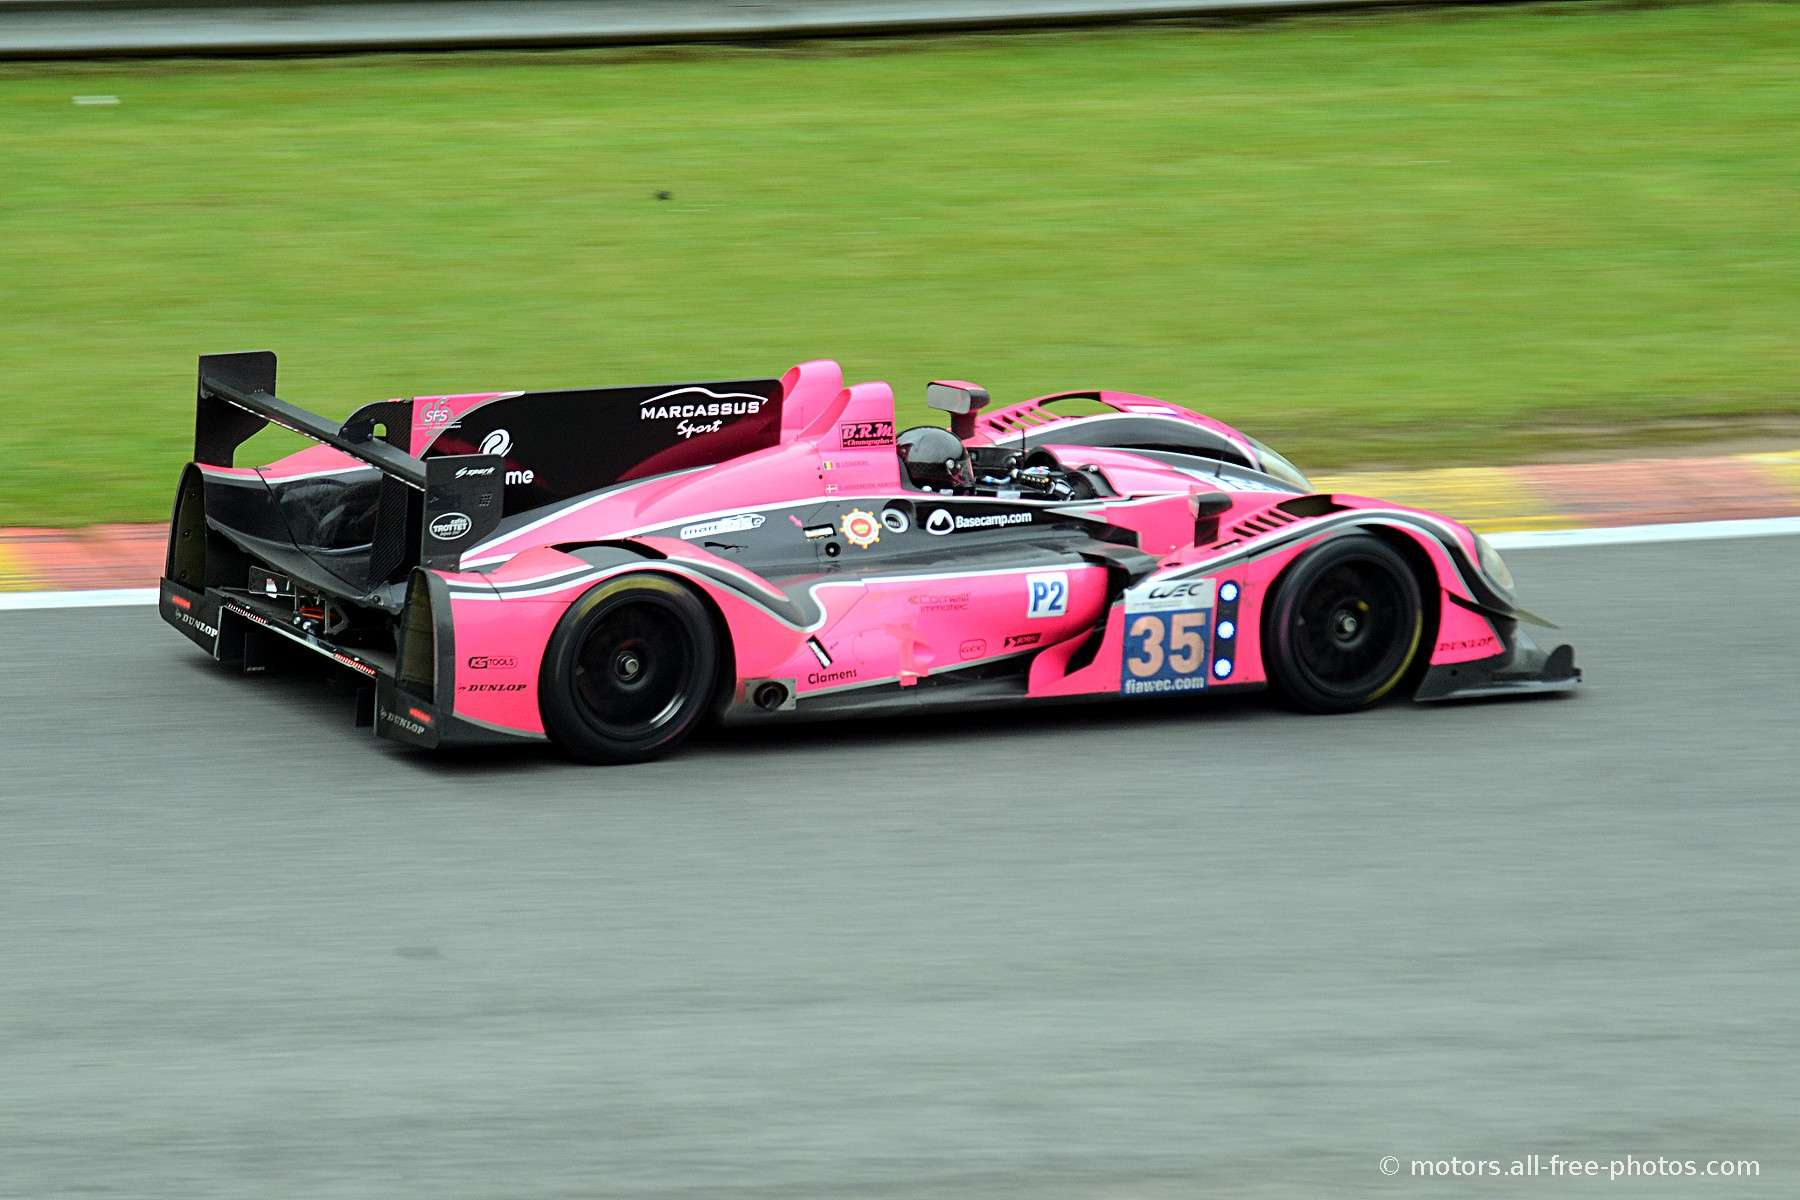 Morgan-Judd - Team OAK Racing